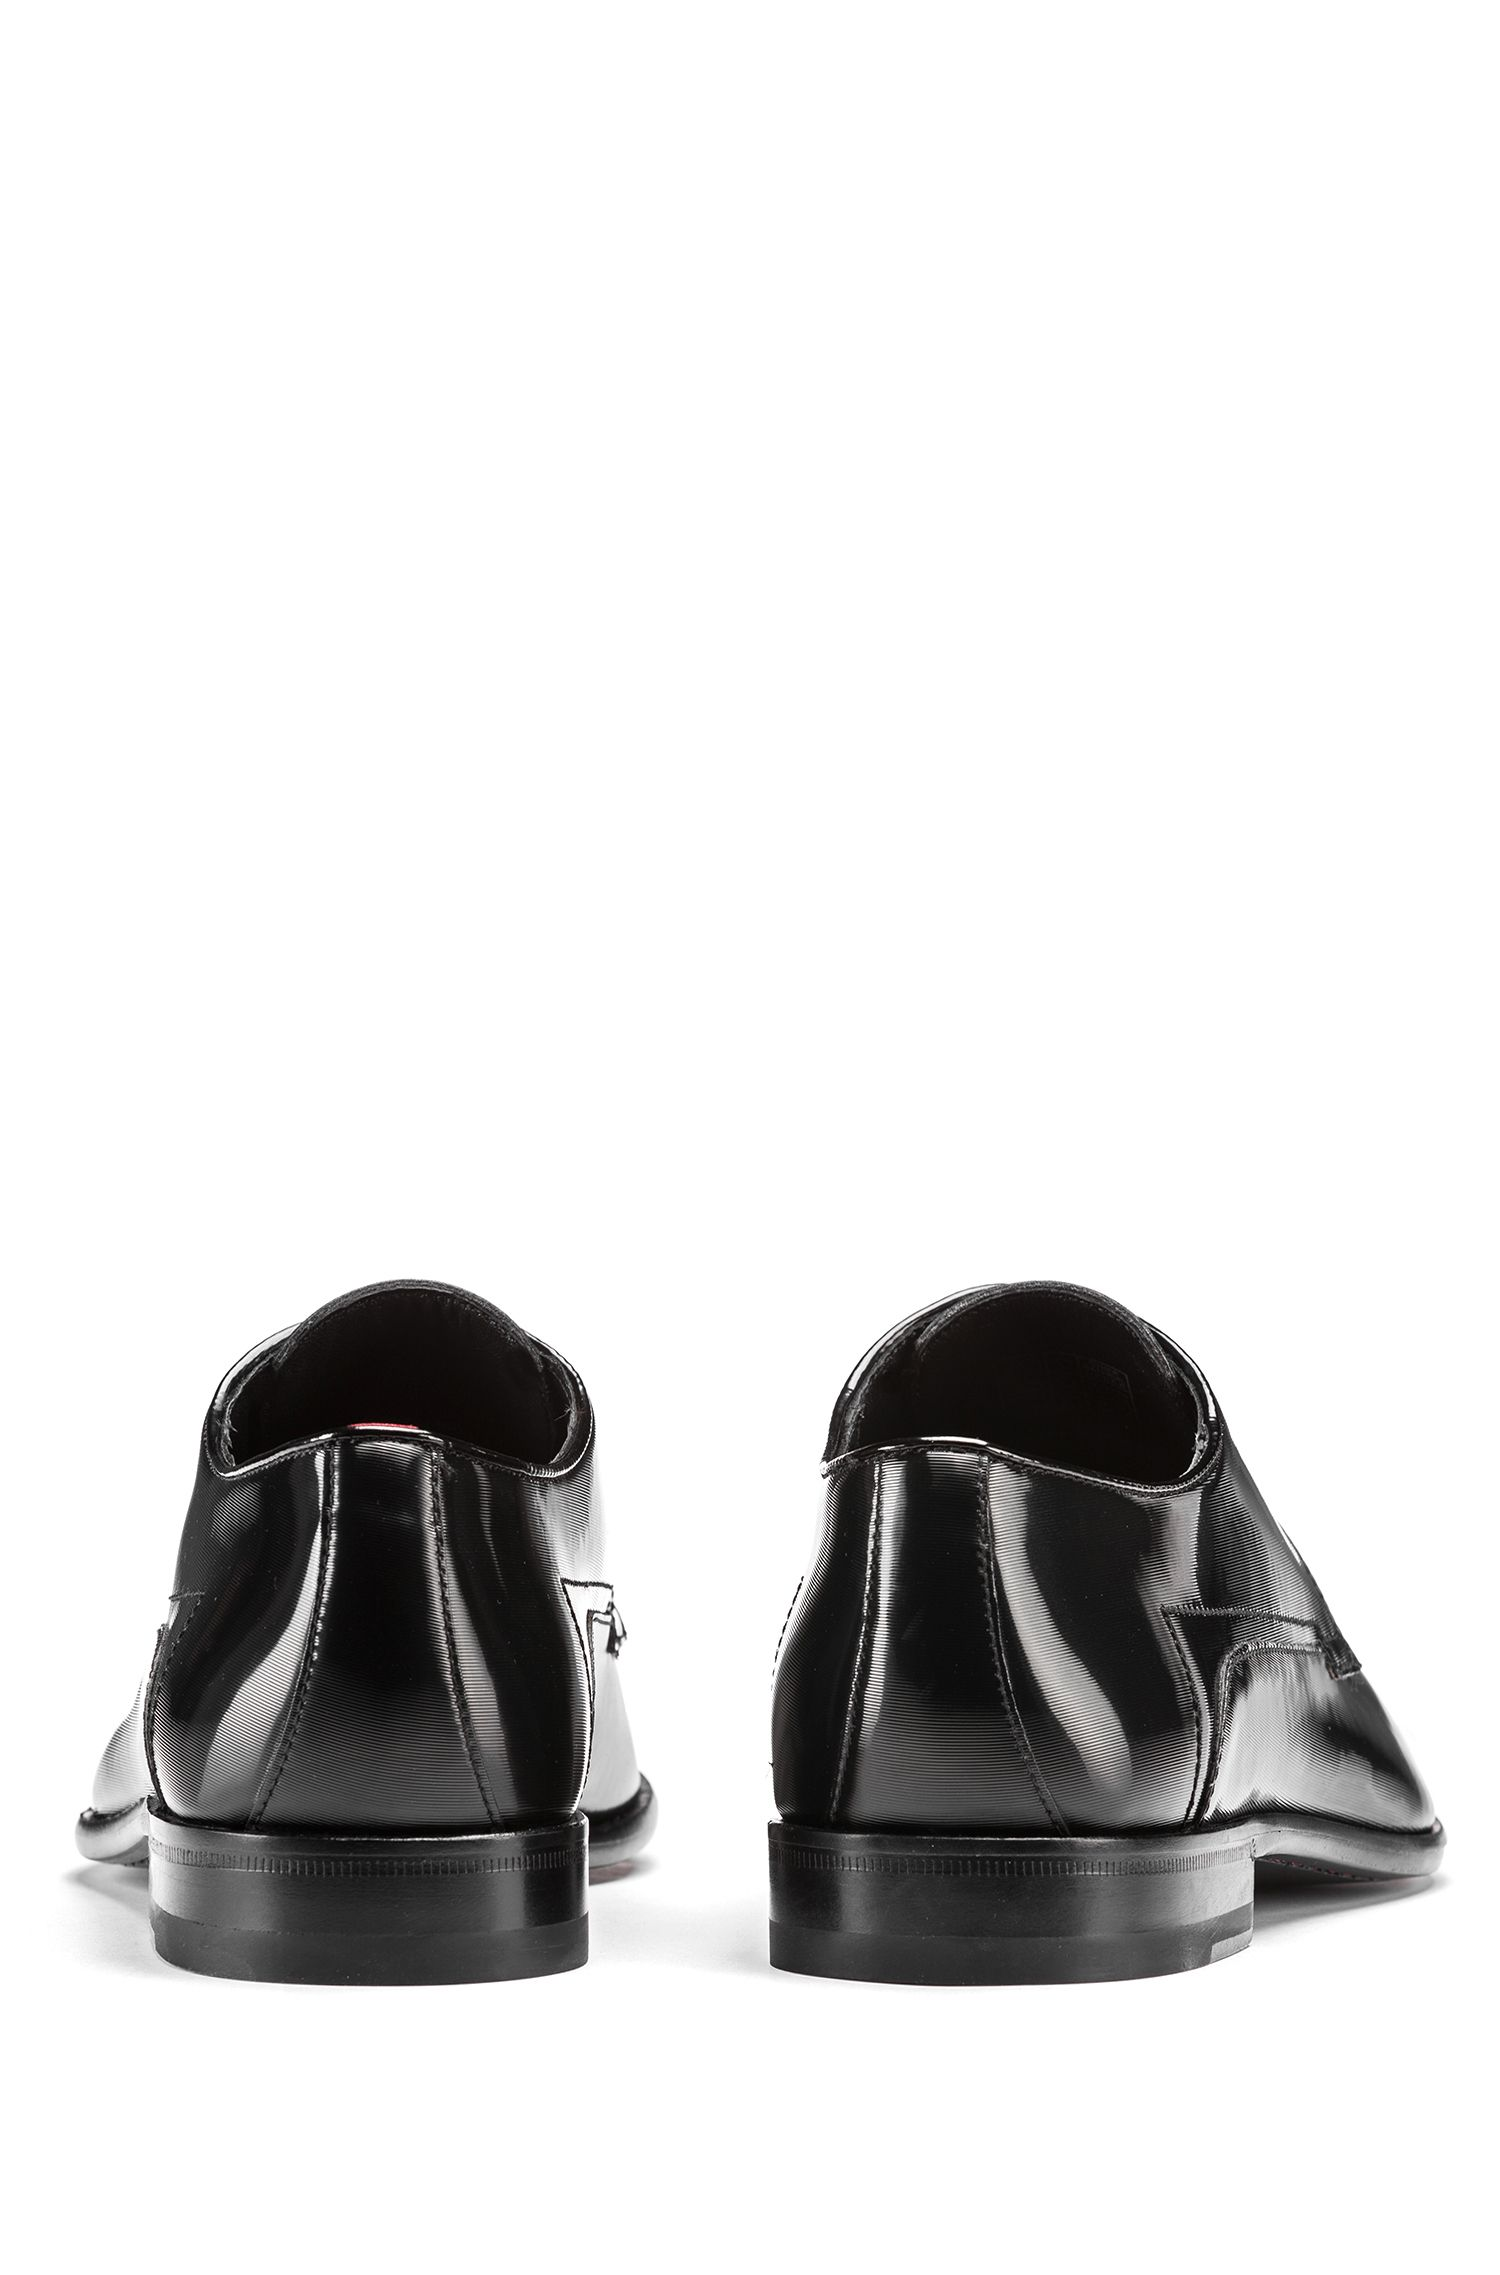 Derby shoes with metallic finishing and seam detailing, Black